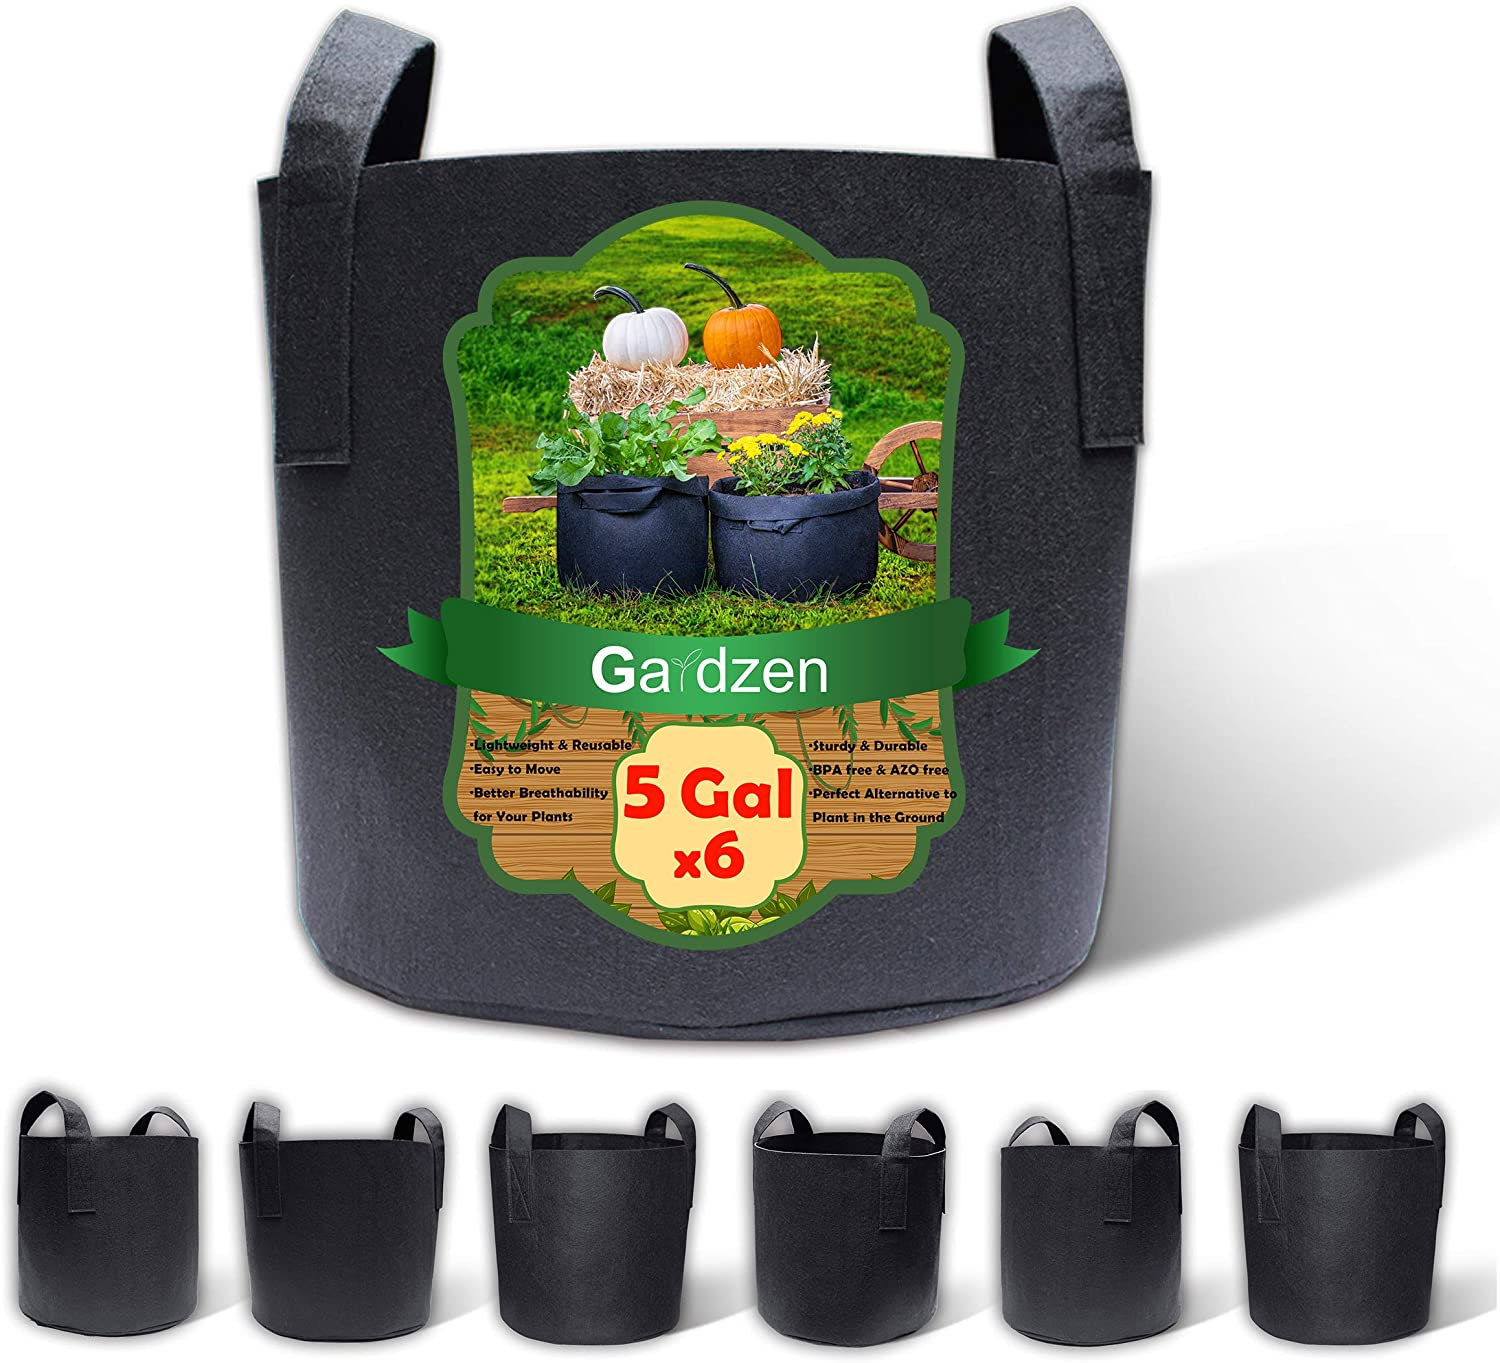 Gardzen 6-Pack 5 Gallon Grow Bags, BPA Free Aeration Fabric Pots with Handles